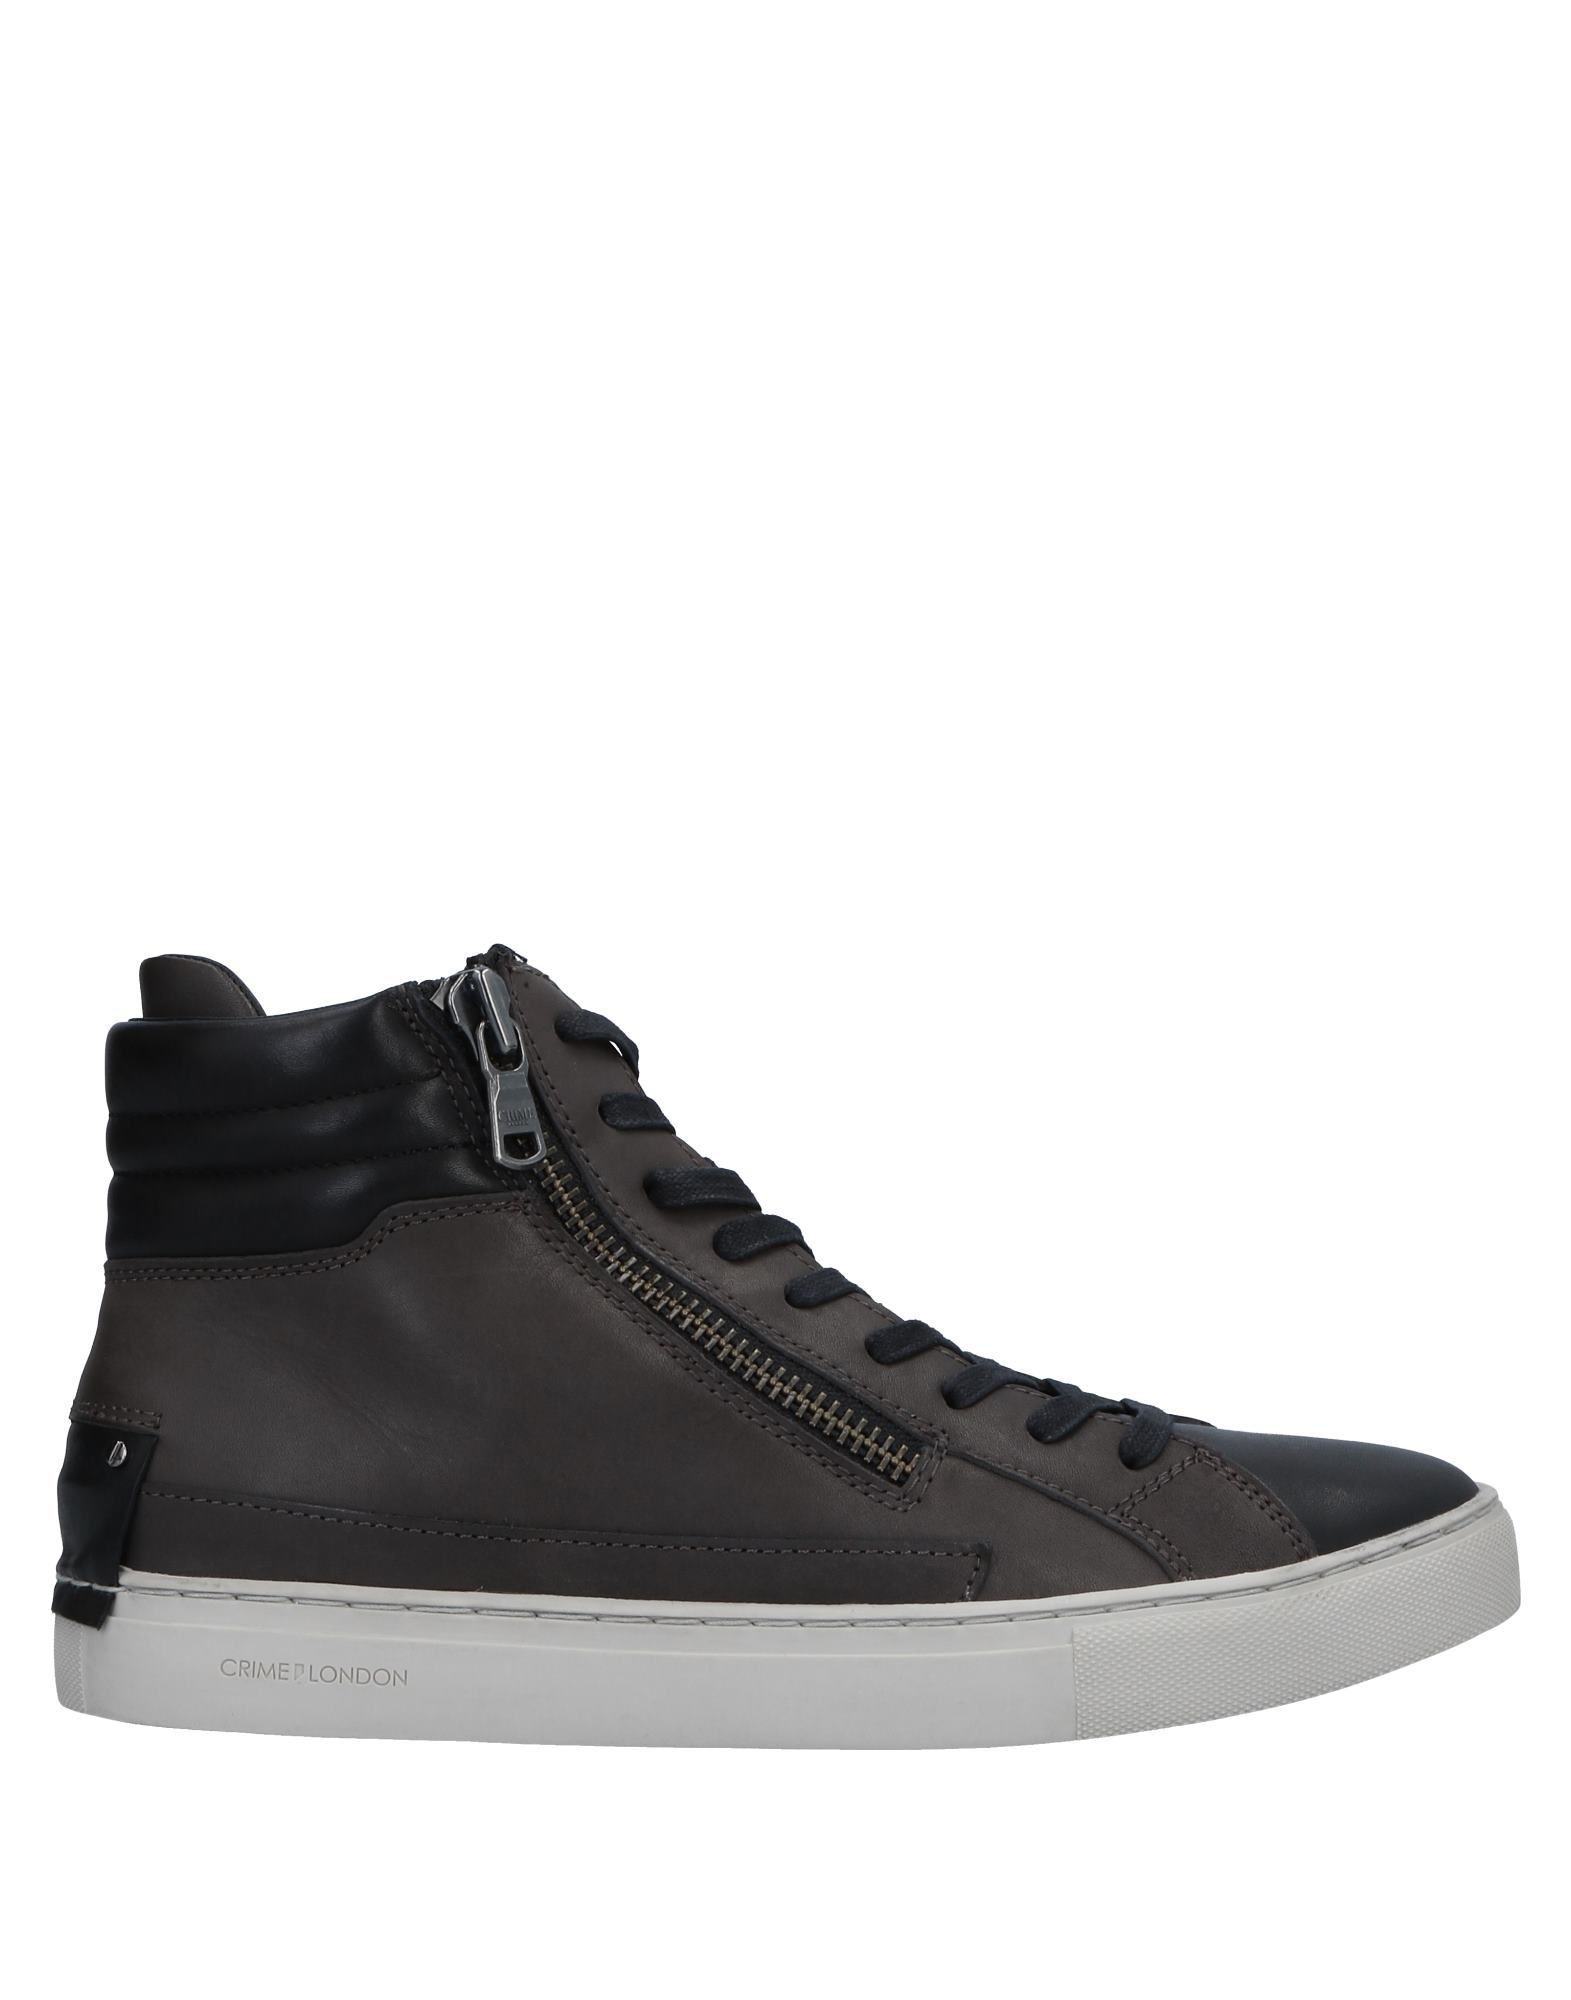 Turnschuhe Crime London herren - 11499042RJ